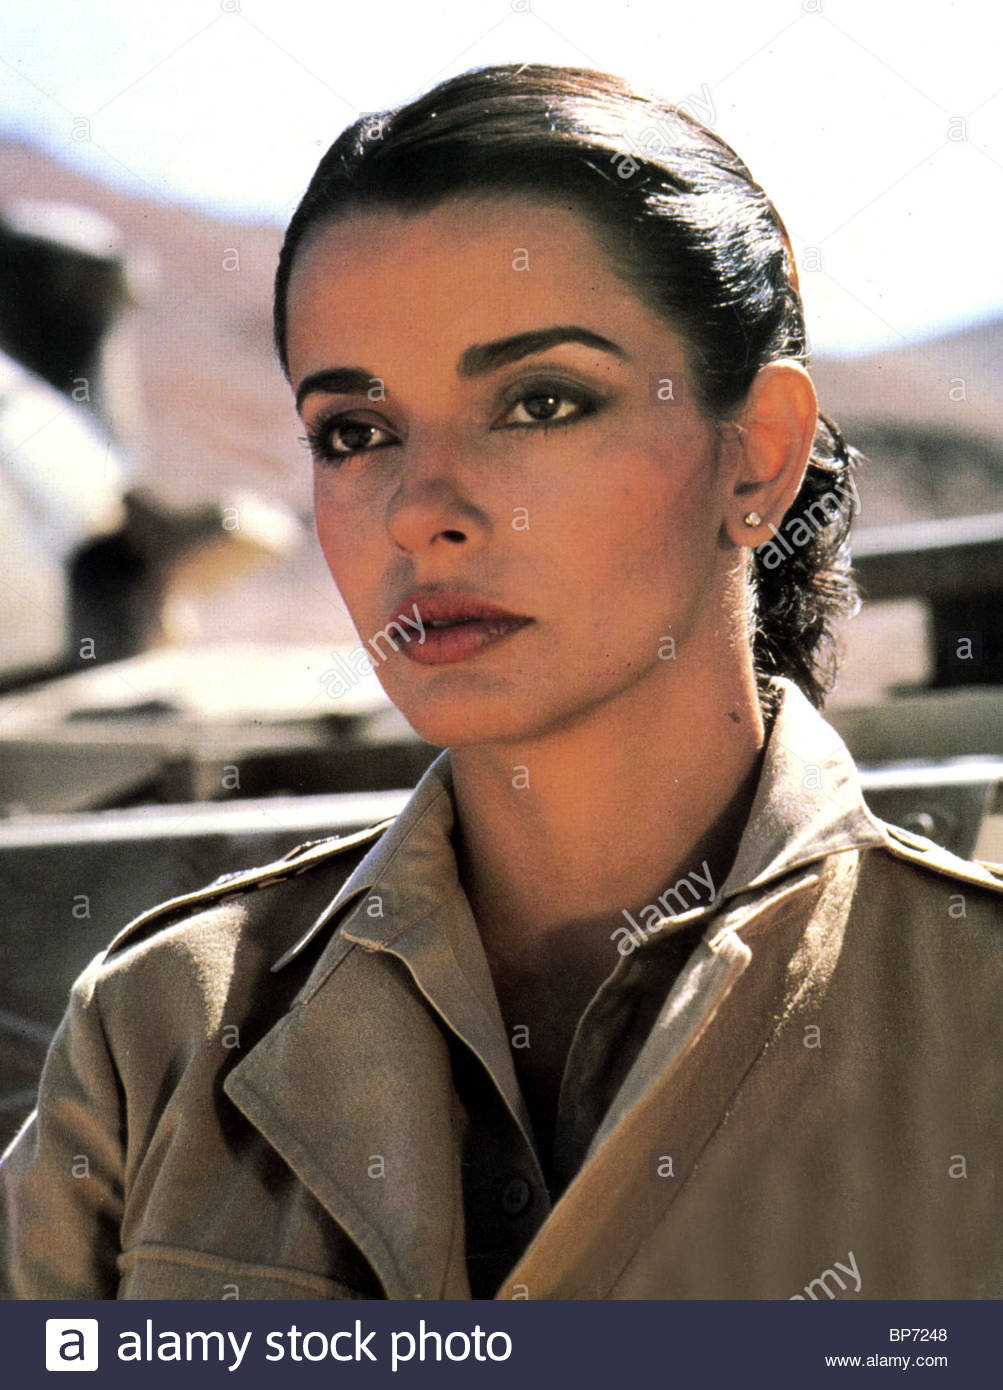 persis khambatta husbandpersis khambatta death, persis khambatta images, persis khambatta heart attack, persis khambatta 2013, persis khambatta cliff taylor, persis khambatta nighthawks, persis khambatta husband, persis khambatta twitter, persis khambatta bio, persis khambatta biography, persis khambatta find a grave, persis khambatta imdb, persis khambatta megaforce, persis khambatta vancouver, persis khambatta oscar, persis khambatta net worth, persis khambatta bald, persis khambatta shaved head, persis khambatta actriz, persis khambatta scar